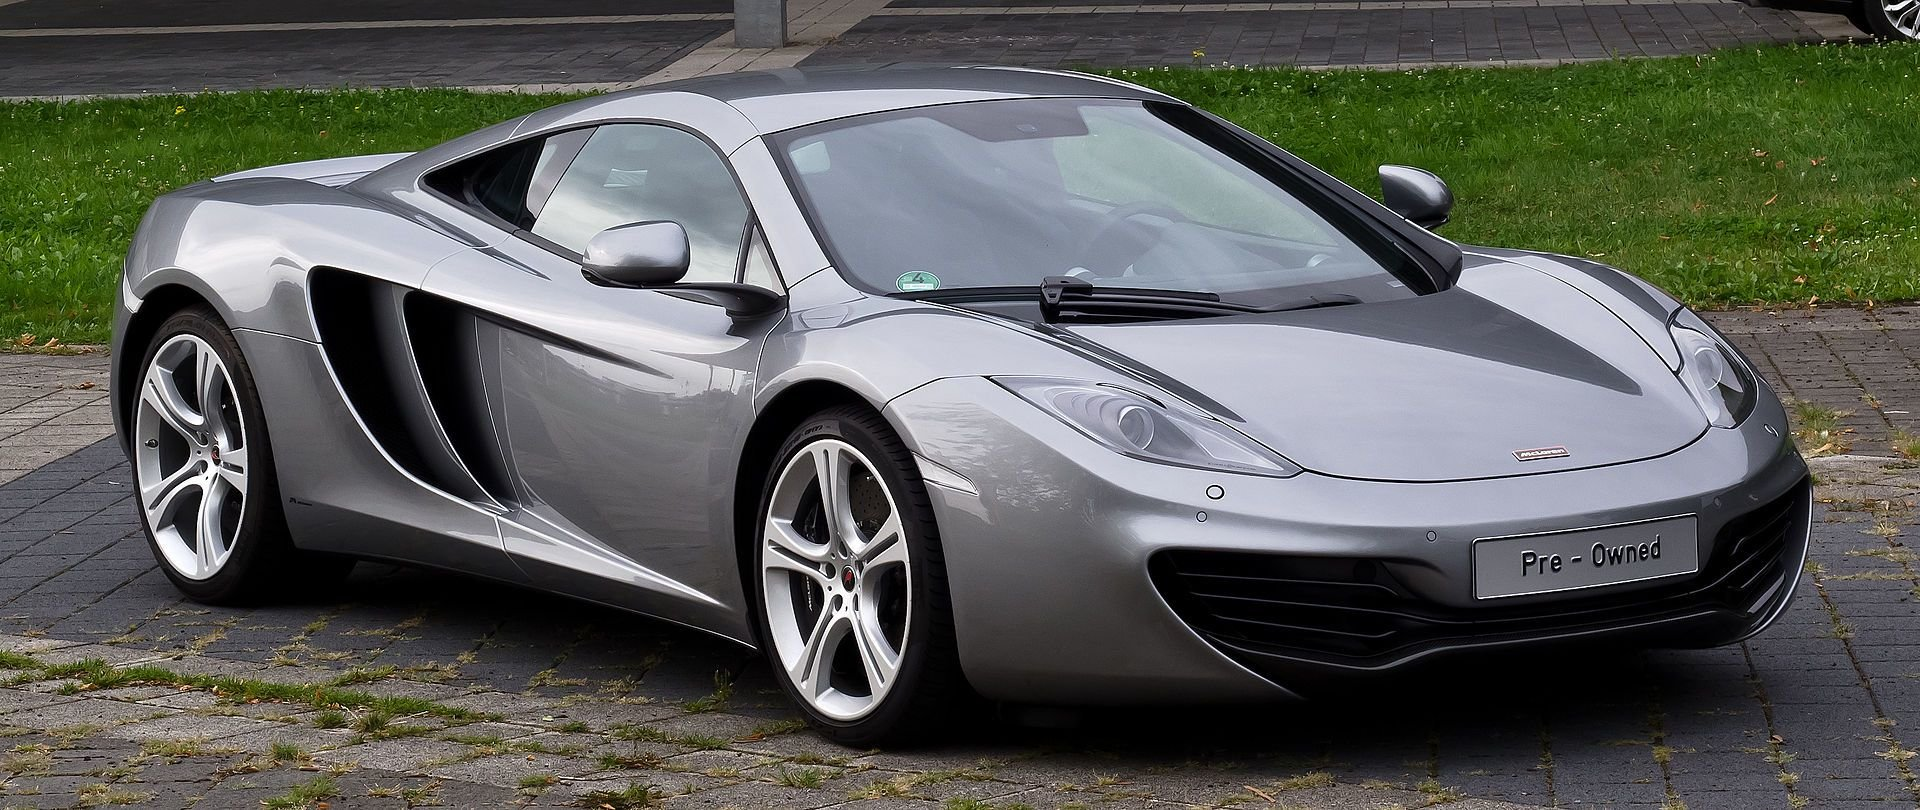 New Mclaren 12C Wikipedia On This Month